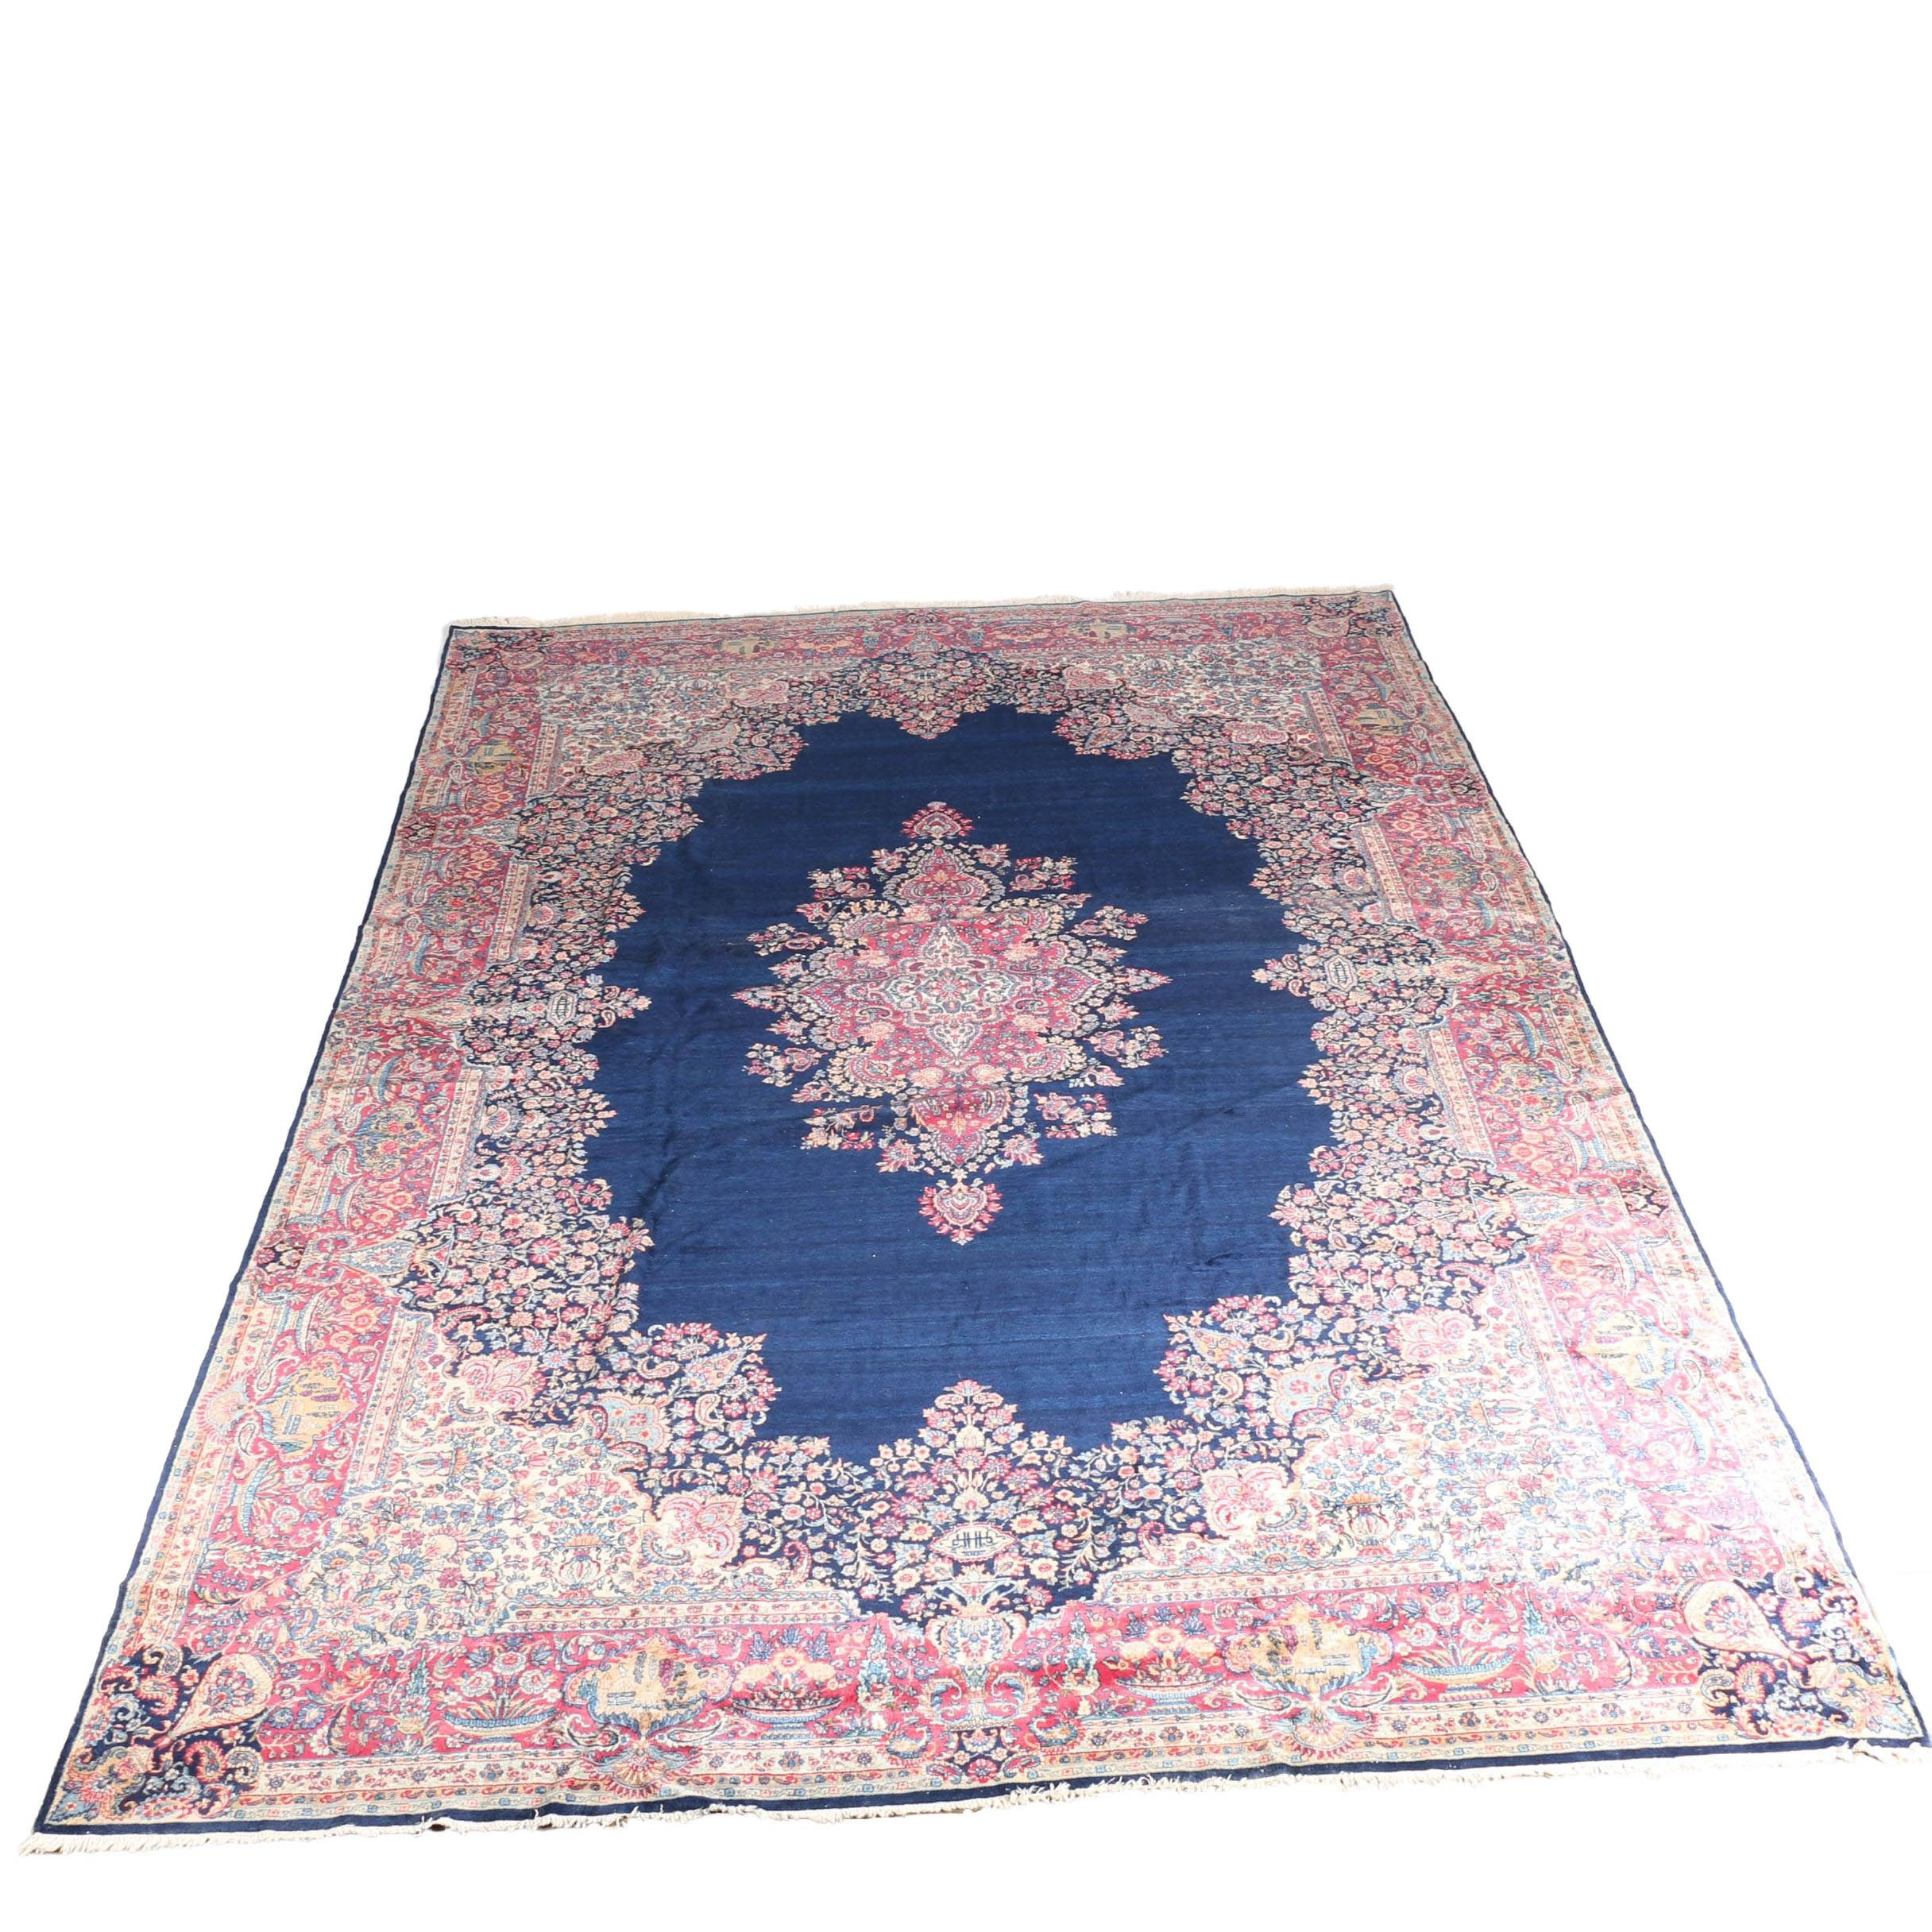 Vintage Room-Sized Hand-Knotted Kerman Area Rug, Circa 1920